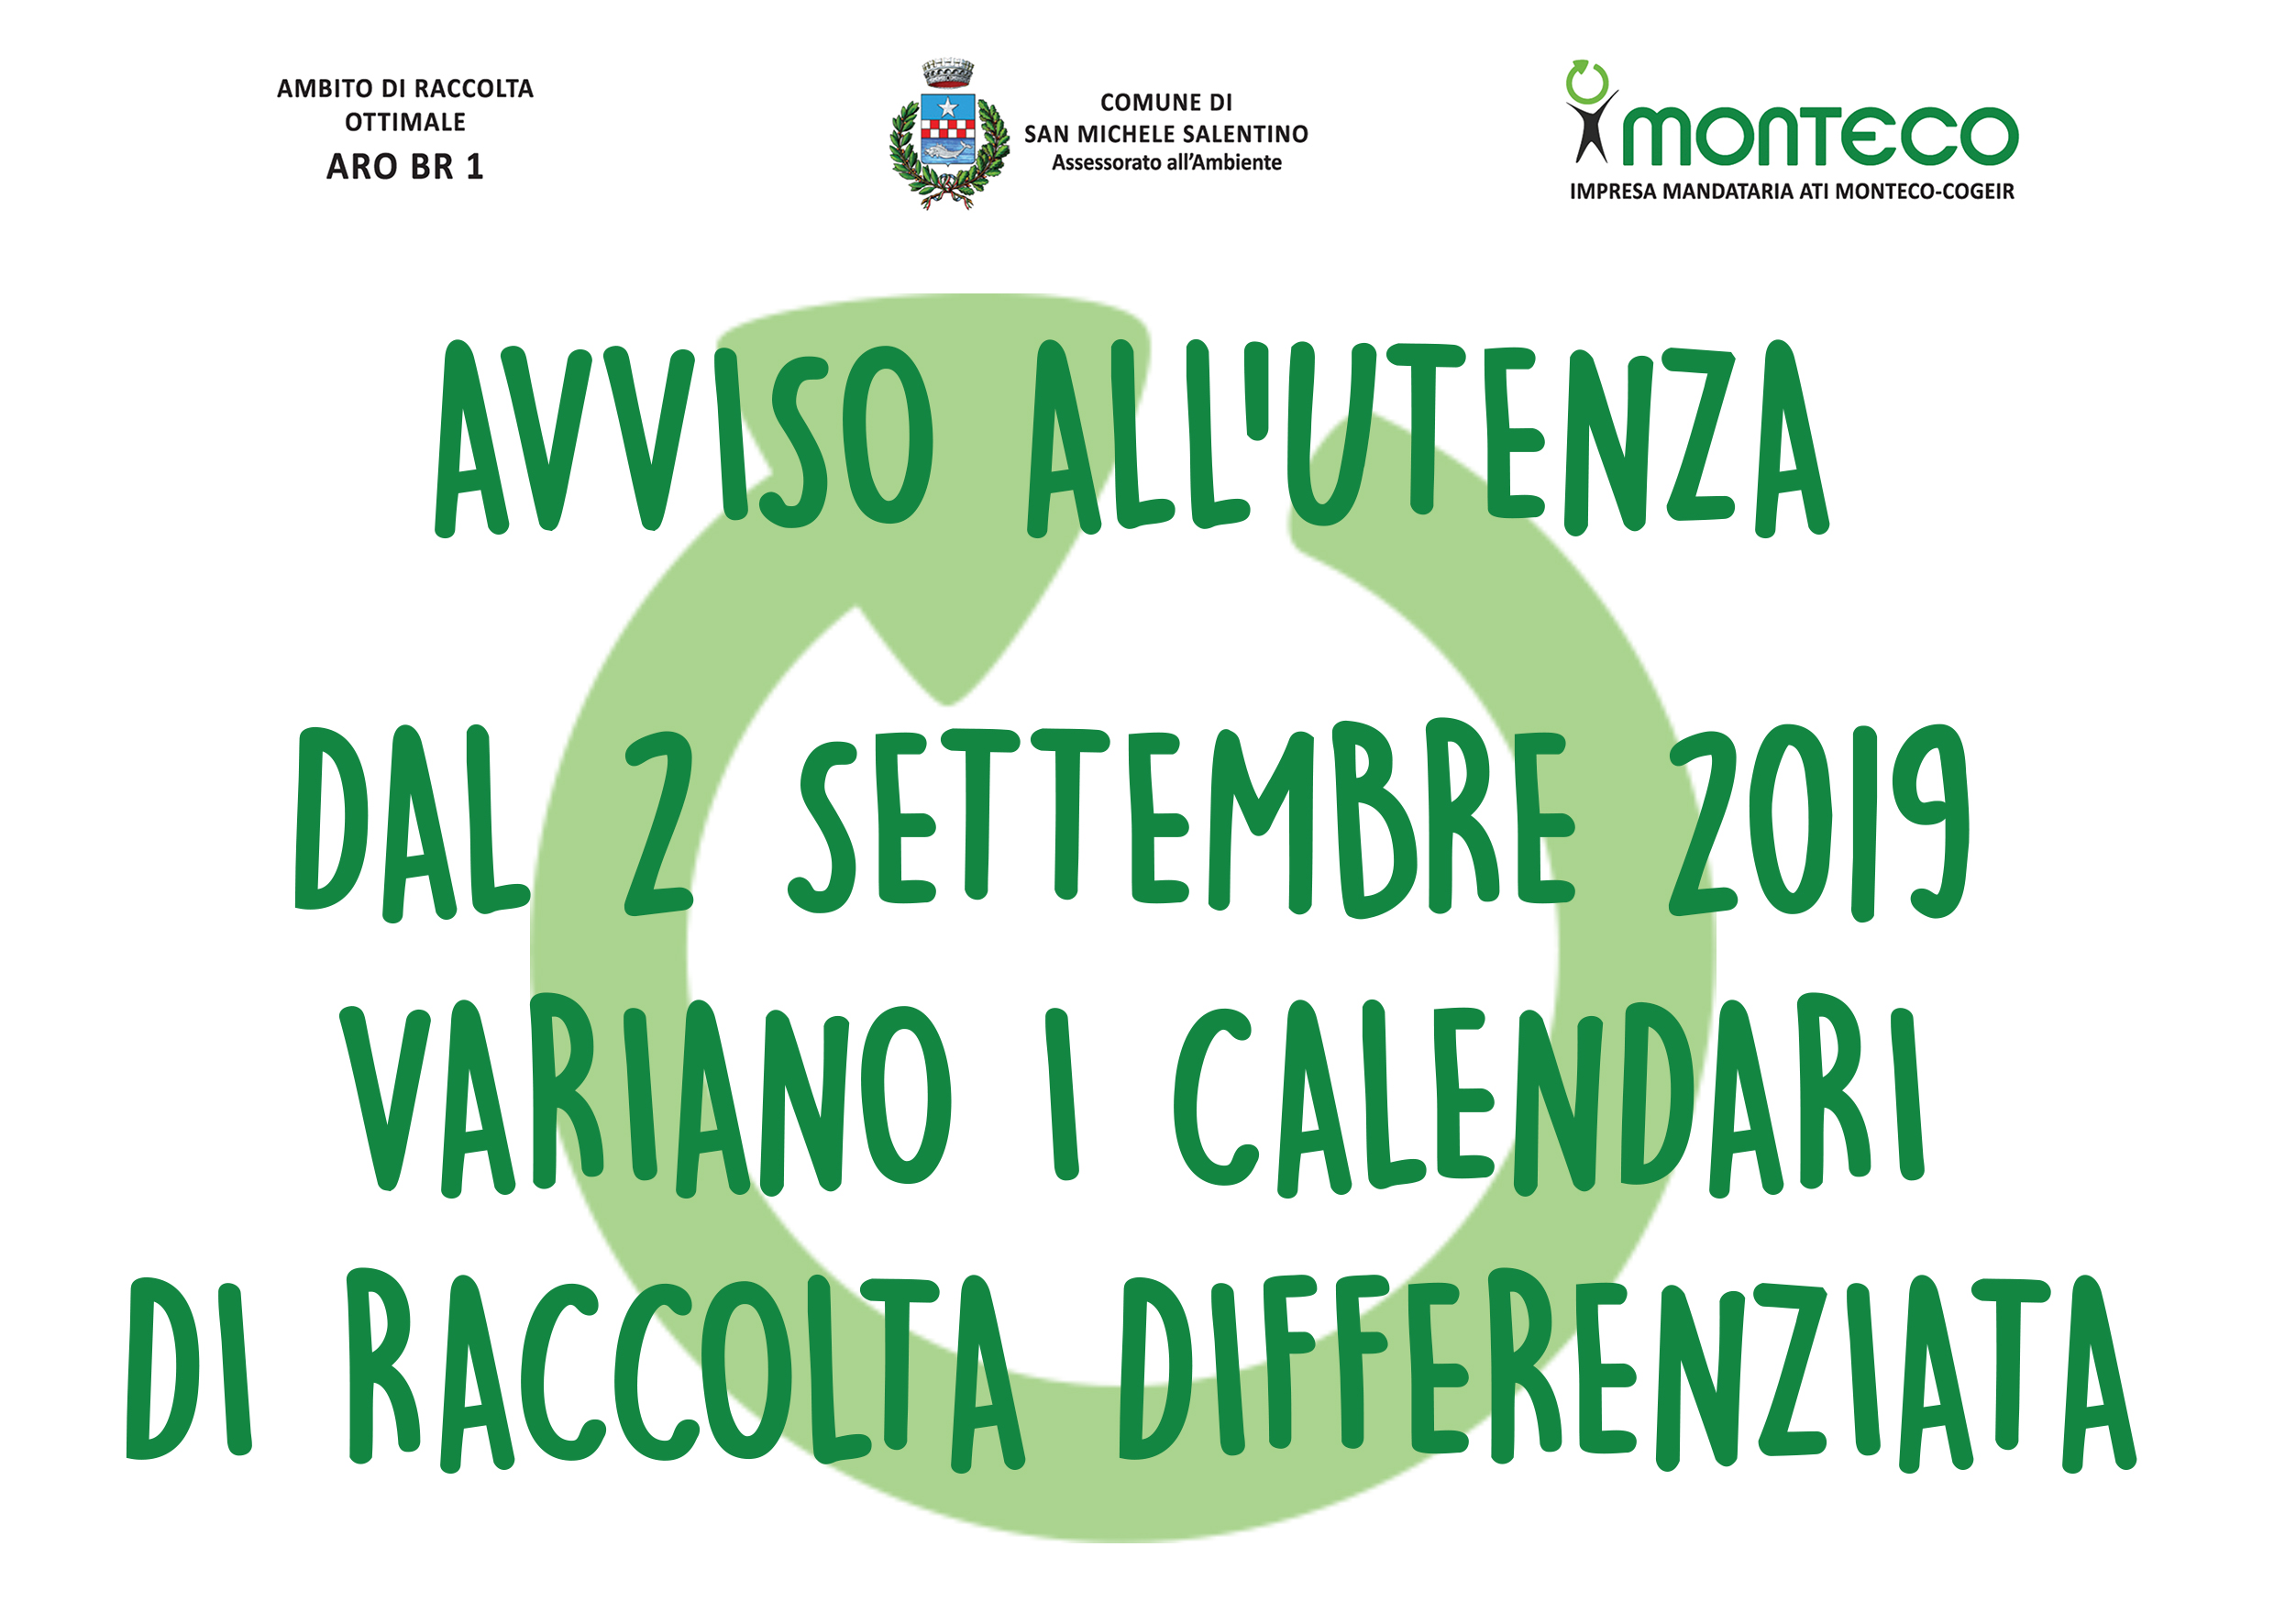 San Michele Salentino. Dal 2 settembre variano i calendari di raccolta differenziata